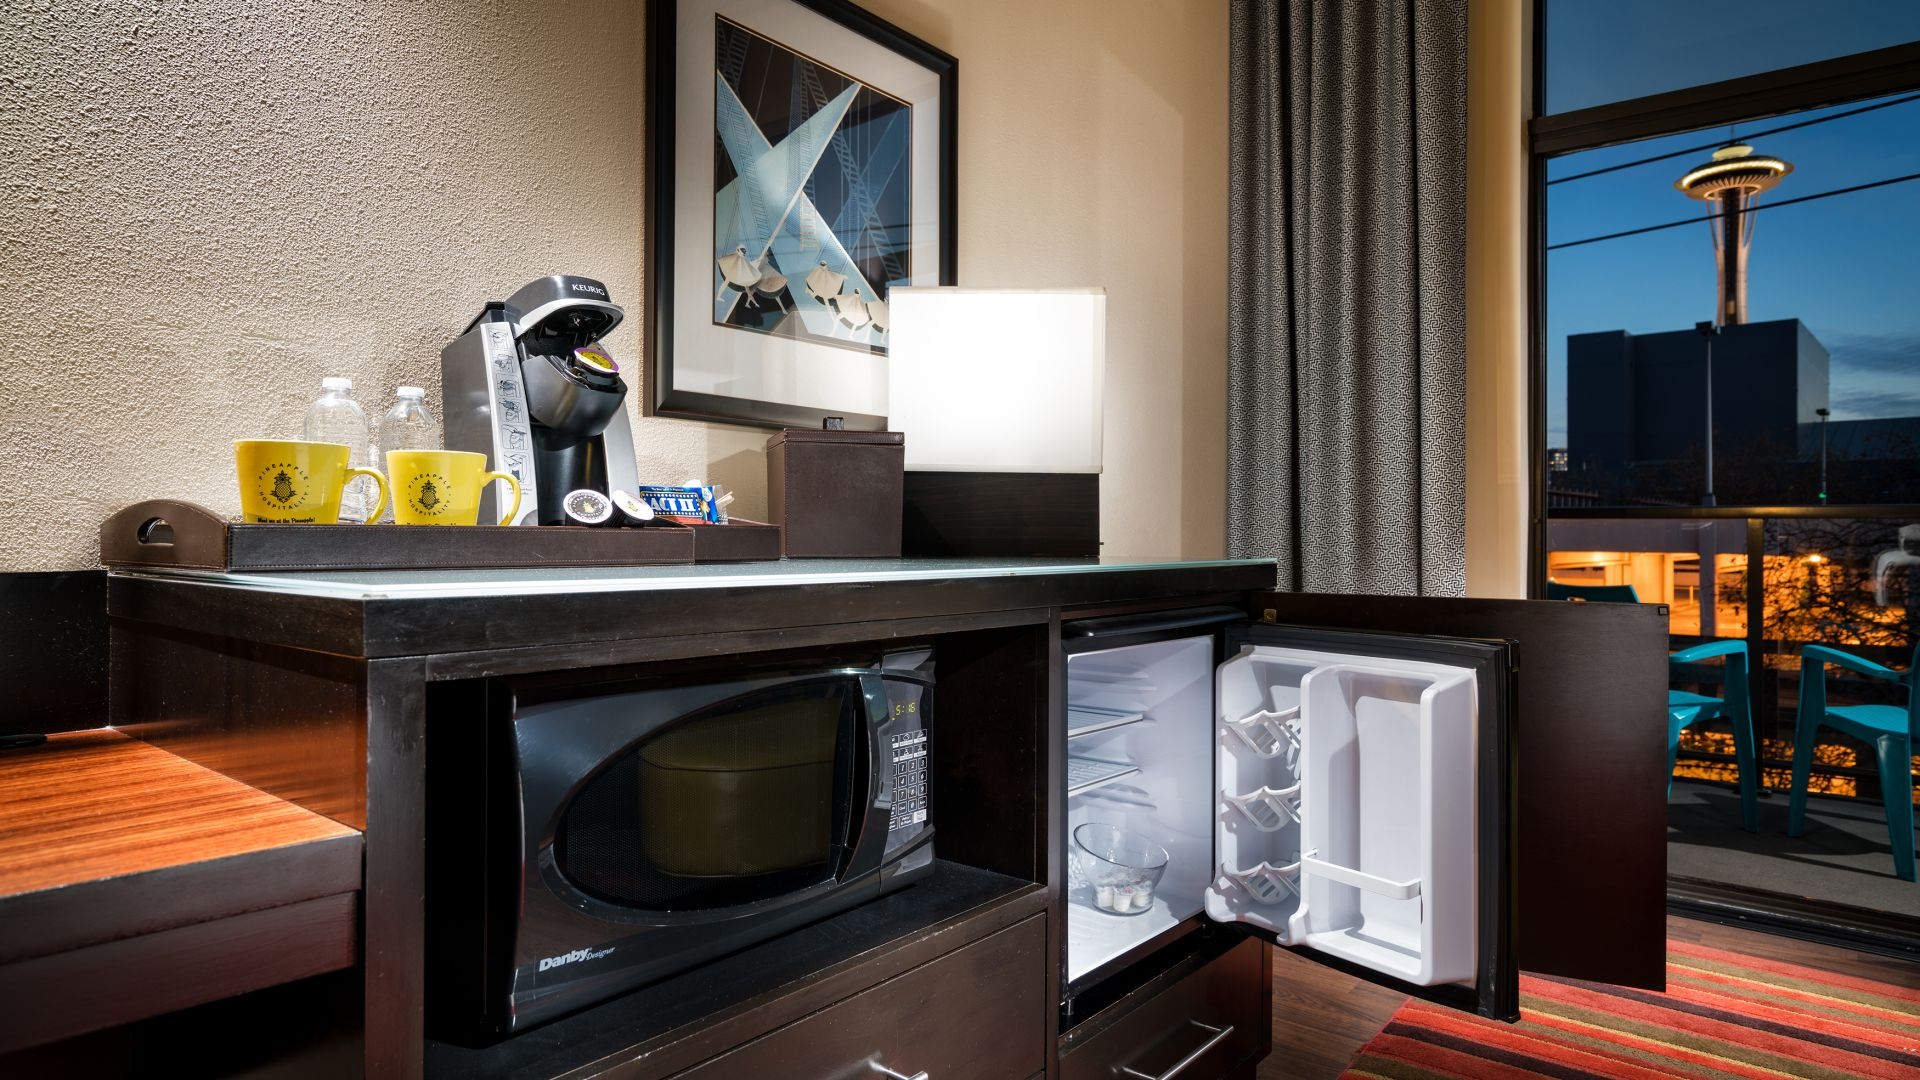 Coffee maker, microwave, and mini-fridge area in the Diva's Dressing Room guestroom